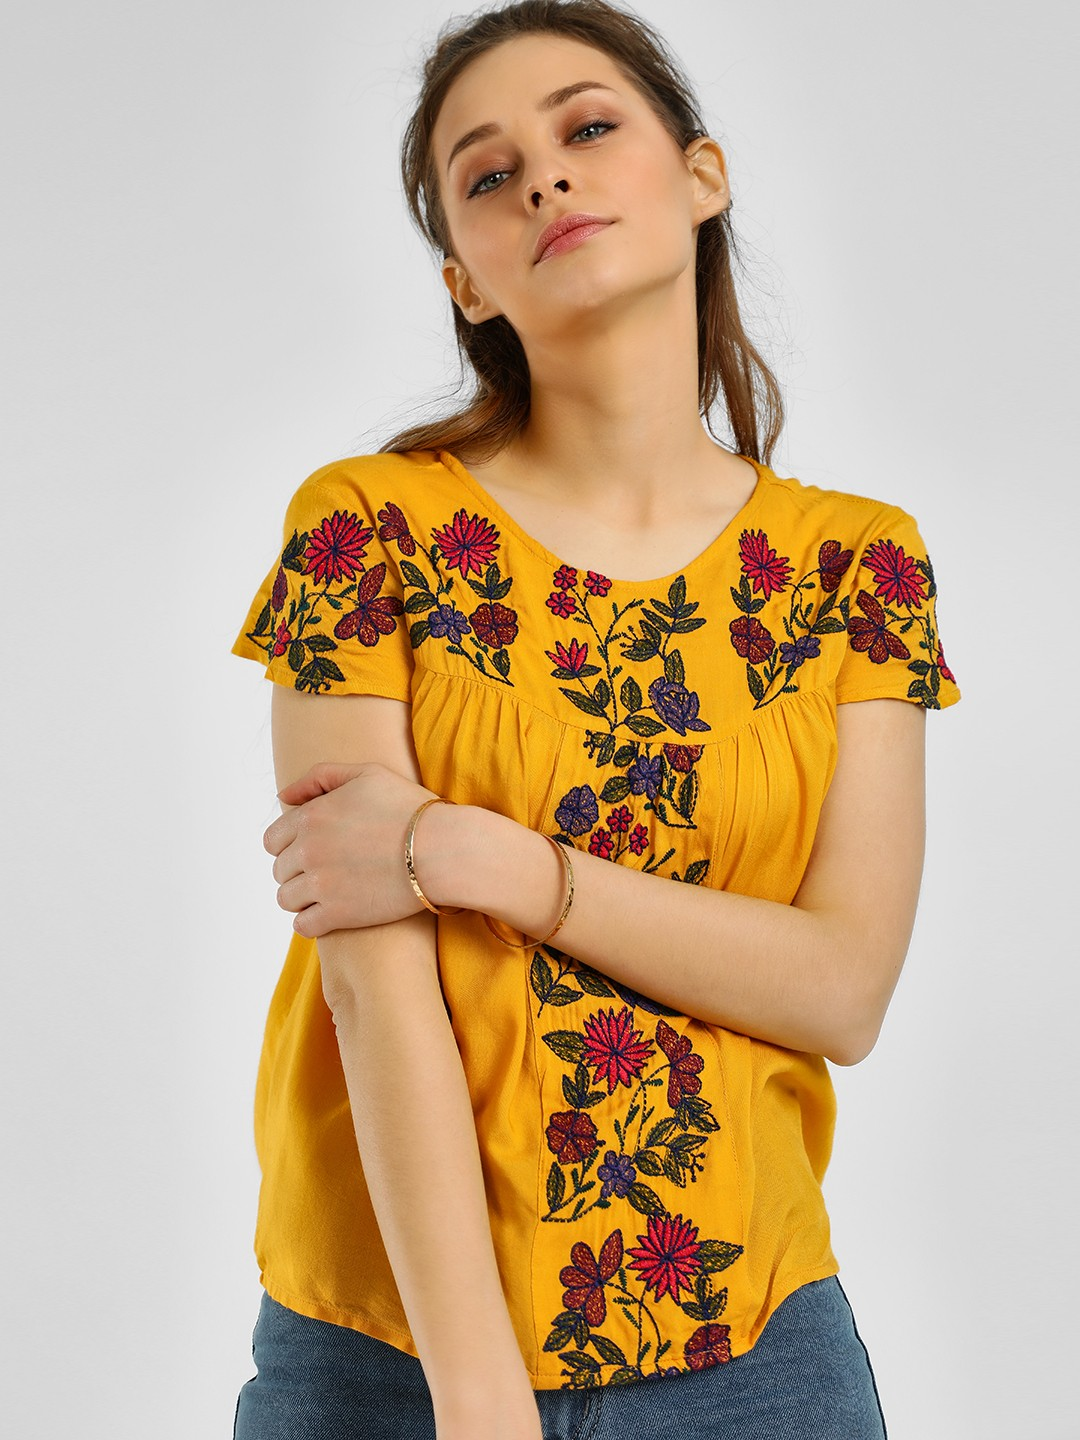 Rena Love Yellow Floral Embroidered Blouse 1